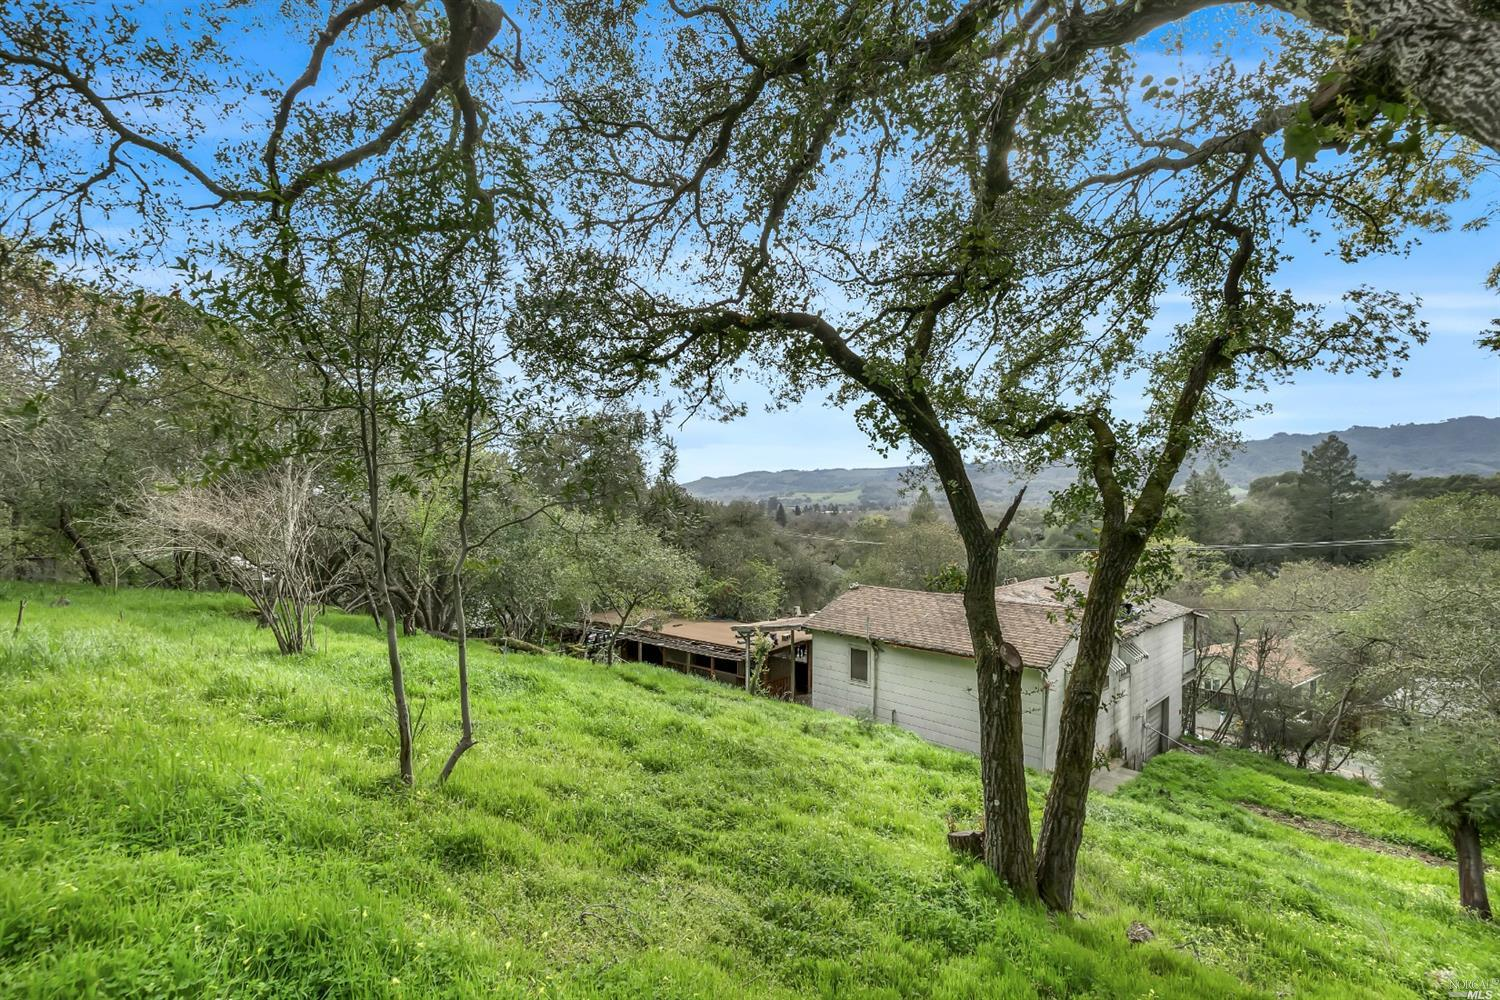 Discover this rustic home site in the heart of Sonoma's lively Springs community. Rich with culture, community, and everything we love about living in the wine country. Located down a quiet and charming street come see this fabulous parcel in an established neighborhood with serene views. Parcel has an existing 1008+/- sq ft structure on at 25,500+/- sq foot lot. Plenty of space to create your custom home with amenities to suit your needs and lifestyle. Existing home which was one a charming country home is past its useful life and ready to be laid to rest. Public utilities are at the build site. Just waiting you to bring your blueprints and bulldozer. Property being sold as land value only and structure is not habitable.